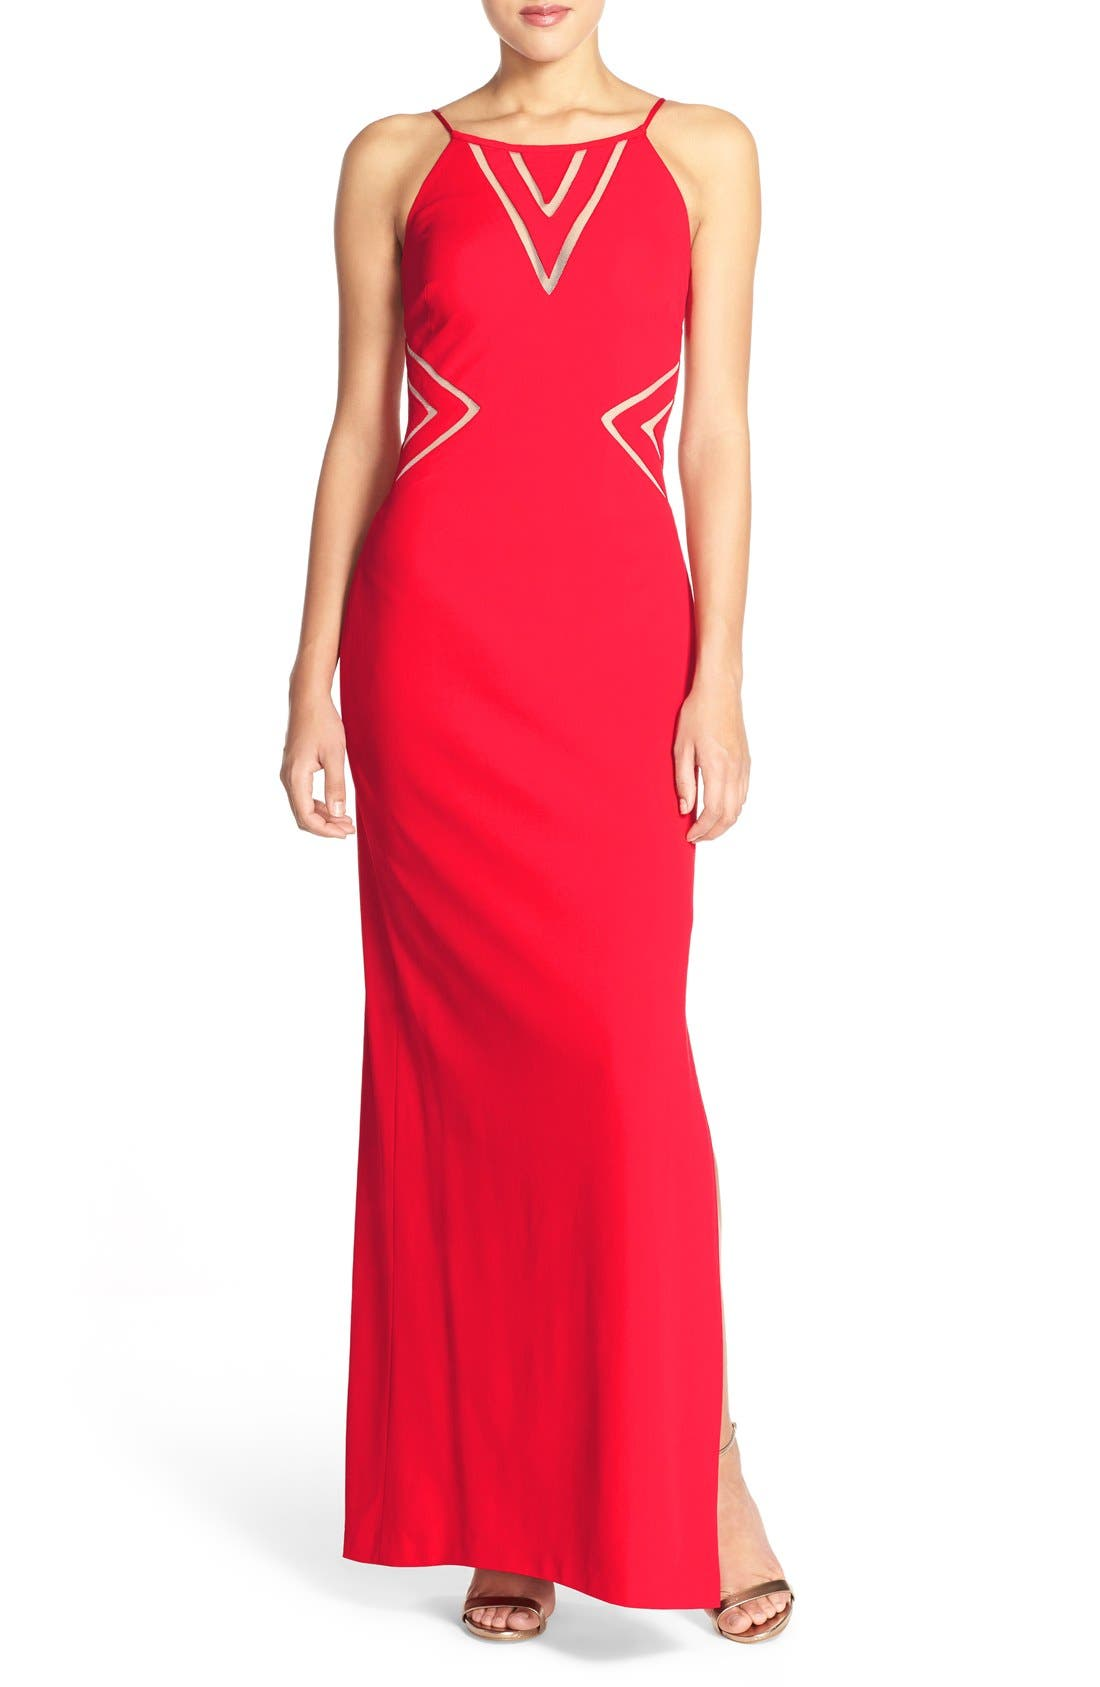 Alternate Image 1 Selected - Aidan Mattox Mesh Inset Jersey Gown